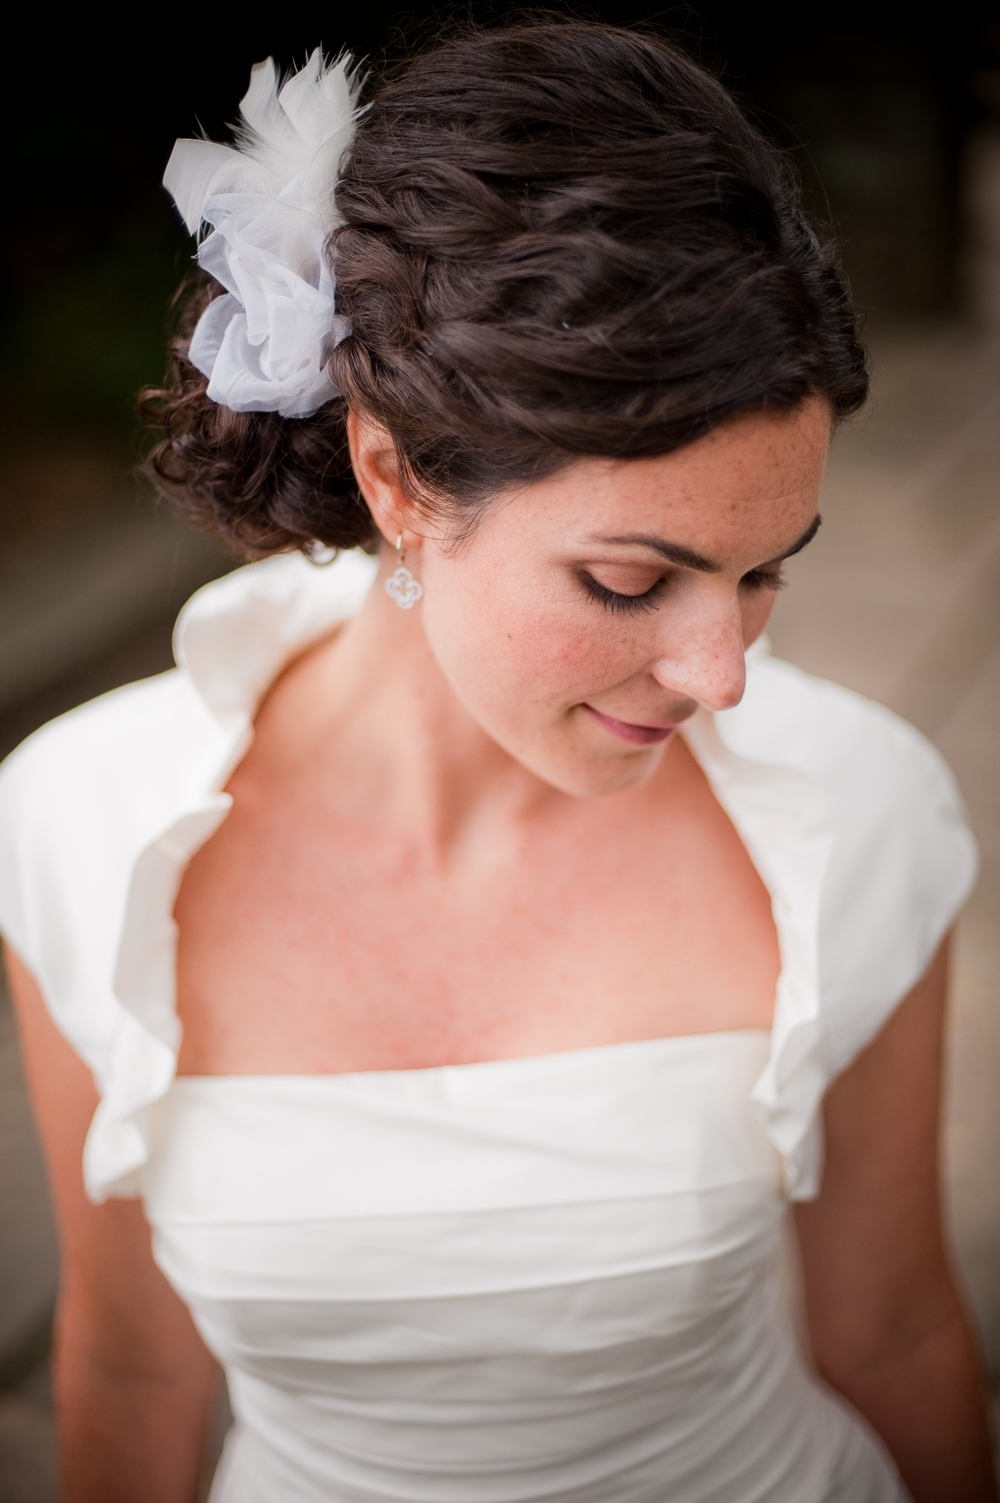 Wedding-hairstyles-updo-classic-curly-updo-with-flower-in-hair.full